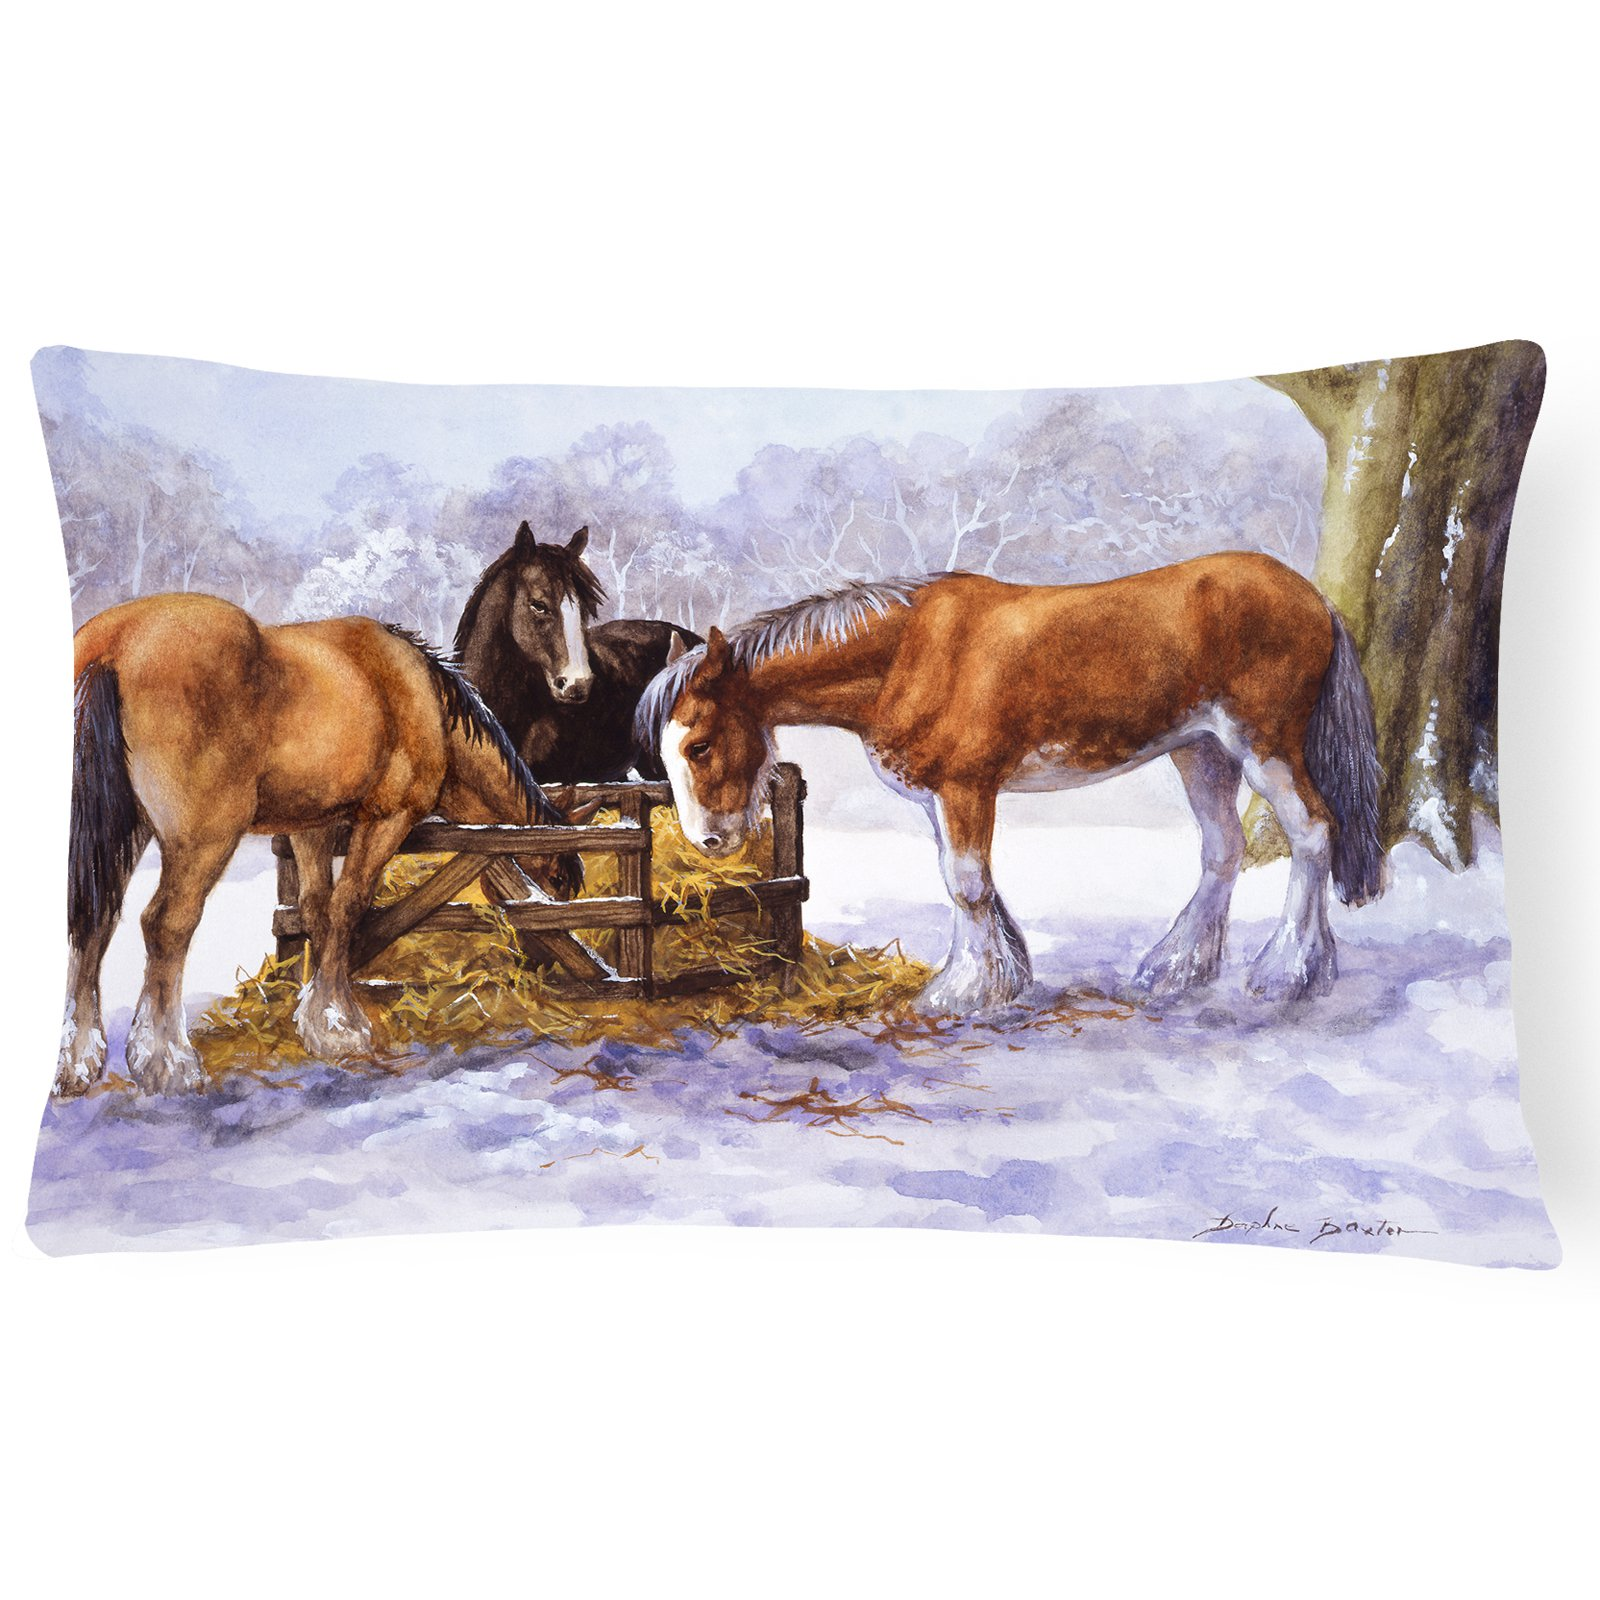 Horses eating Hay in the Snow Fabric Decorative Pillow